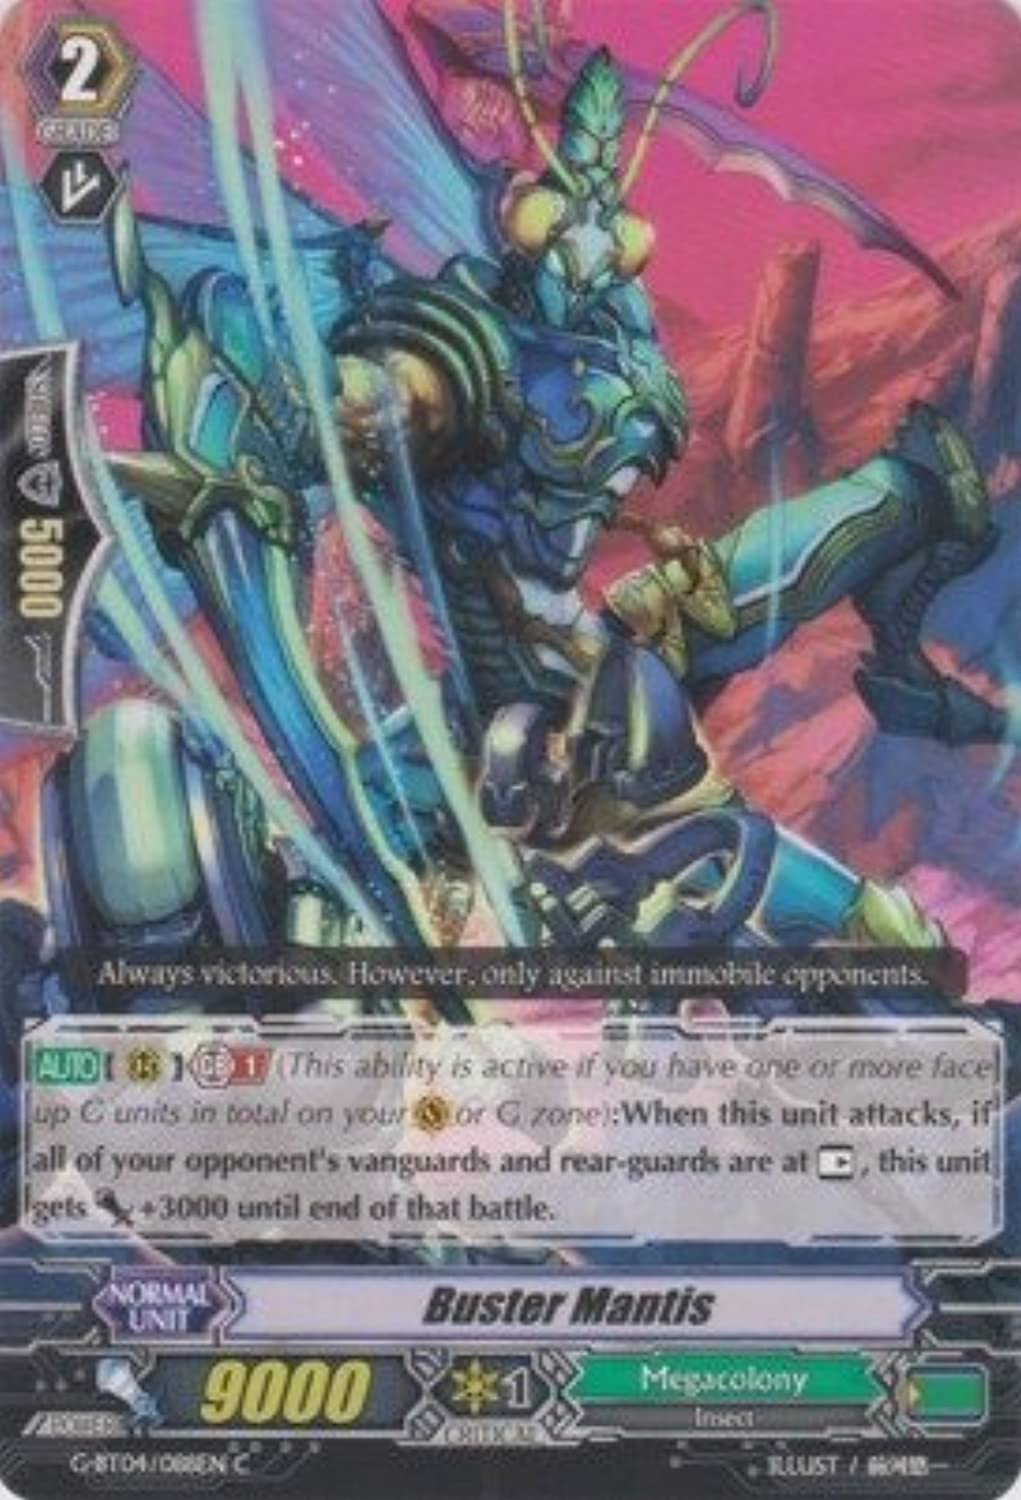 Cardfight   Vanguard TCG - Buster Mantis (G-BT04 088EN) - G Booster Set 4  Soul Strike Against The Supreme by Bushiroad Inc.